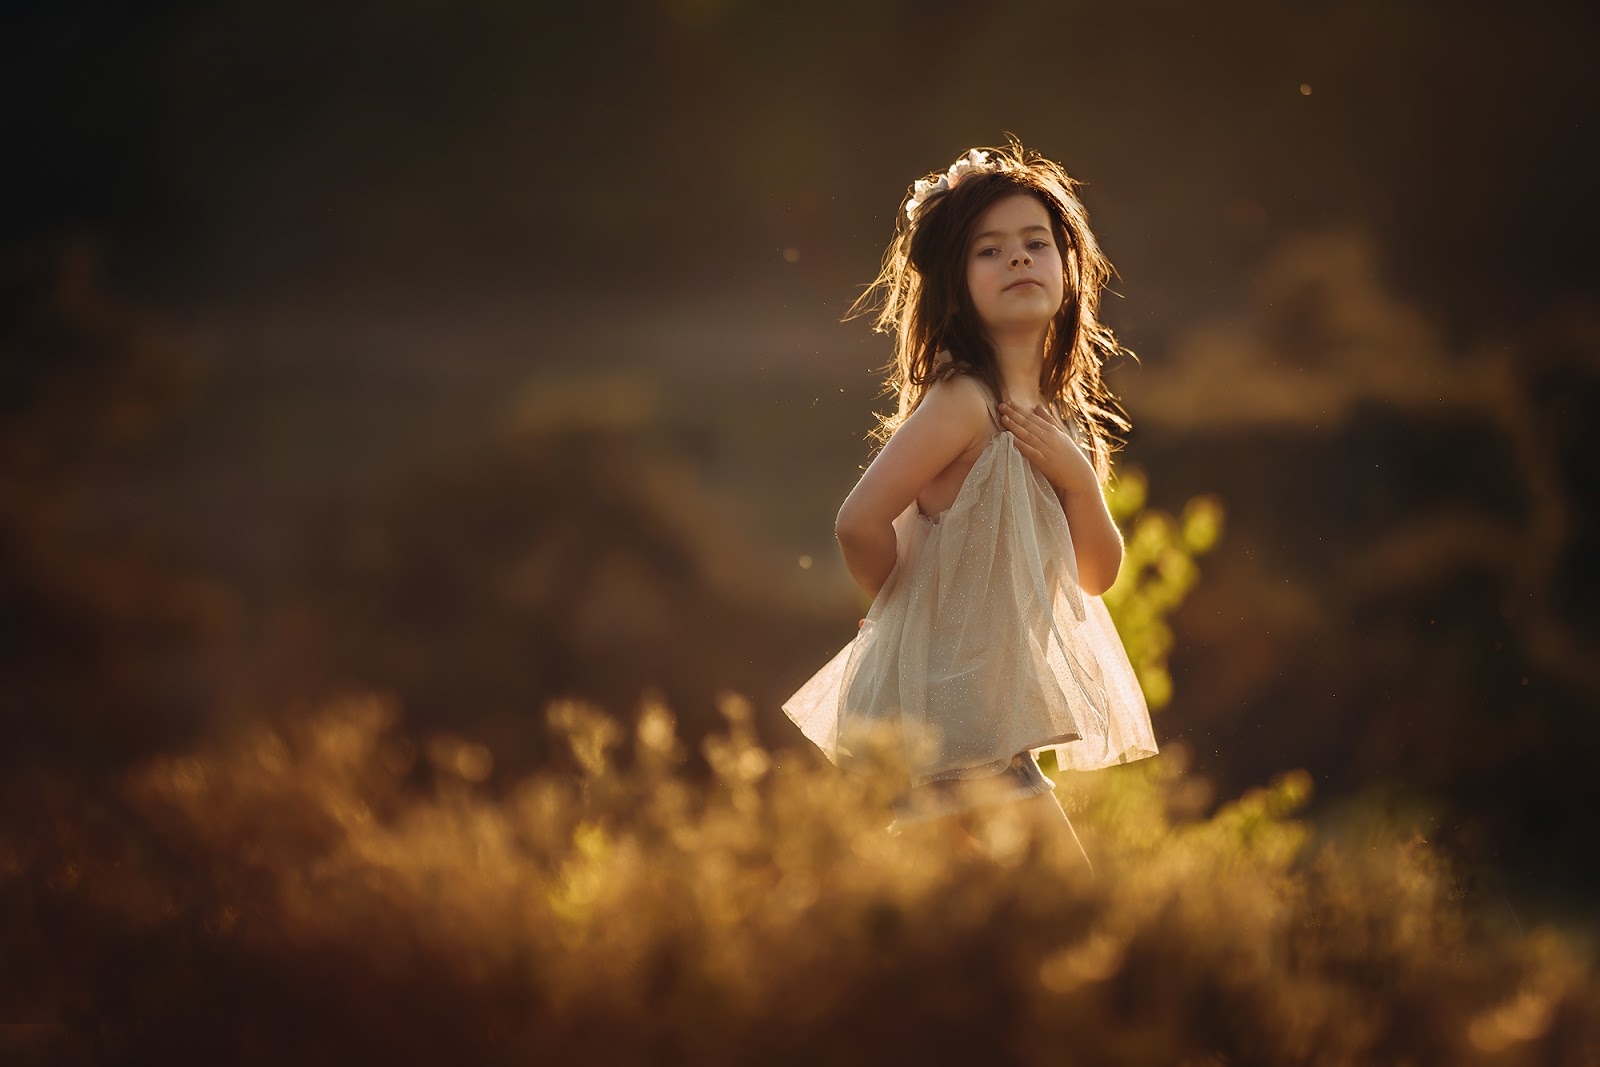 Sony A7RIII portrait of a beautiful little asian girl running through the fields during sunset by Willie Kers